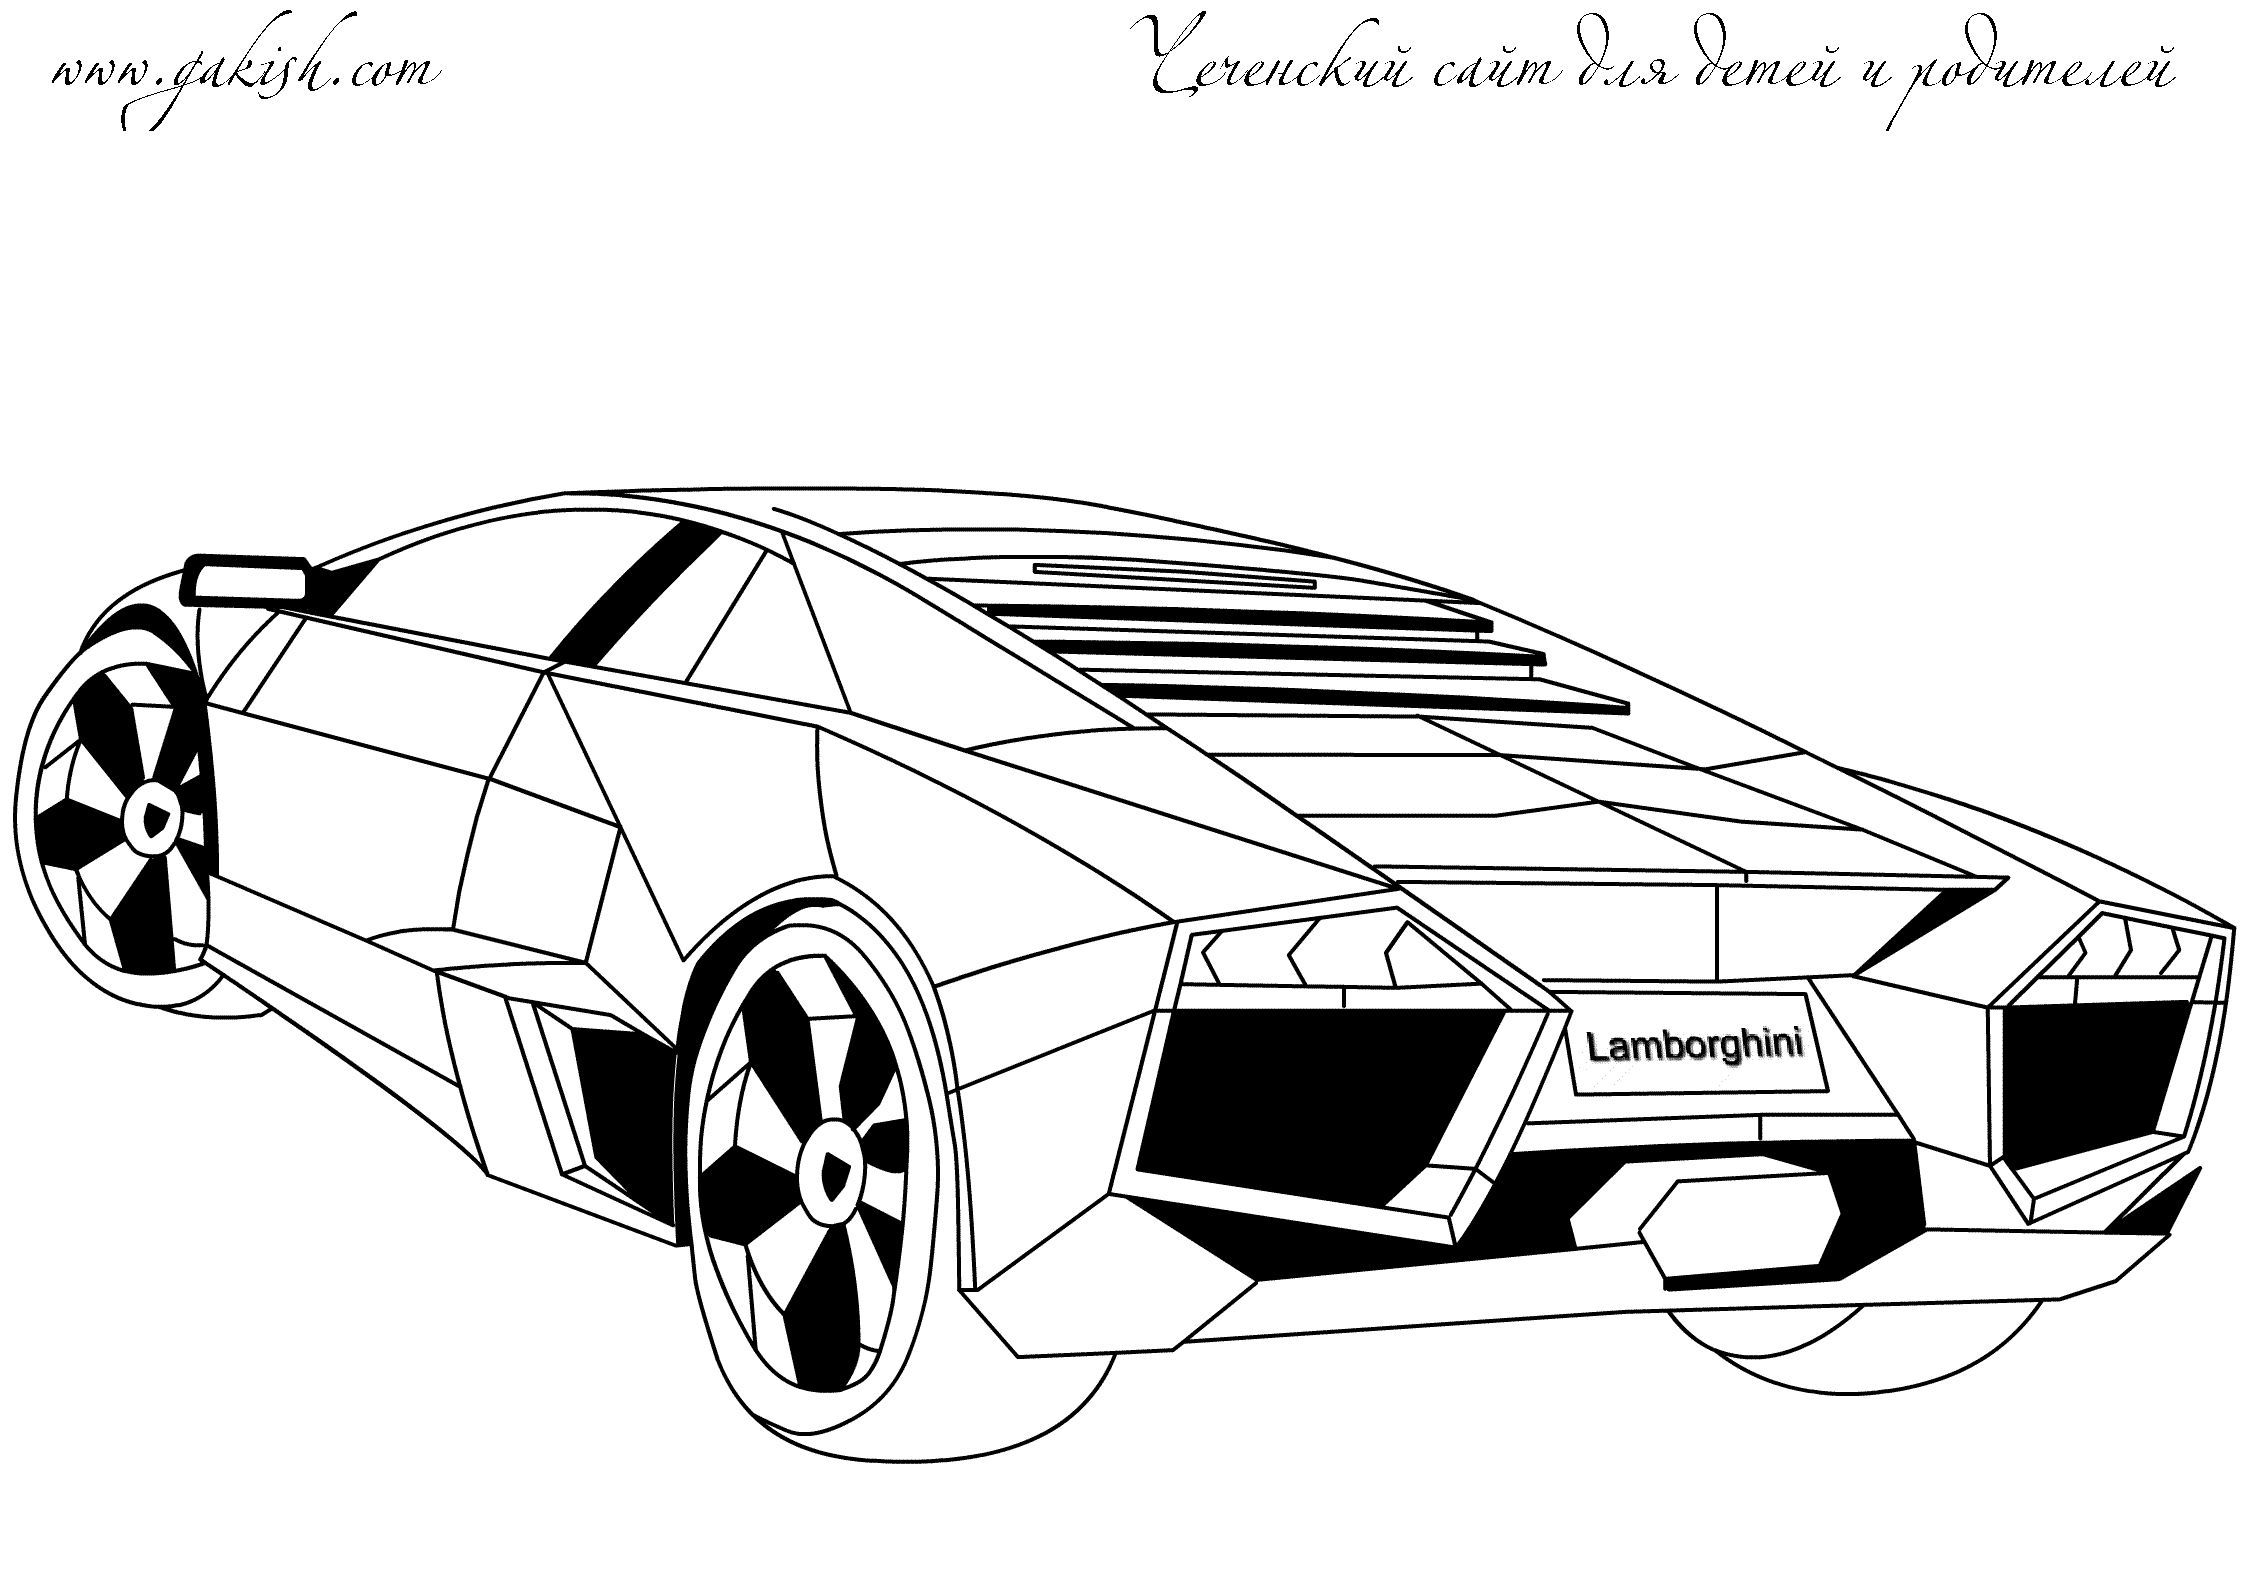 colouring in pictures of cars carz craze cars coloring pages of in colouring pictures cars